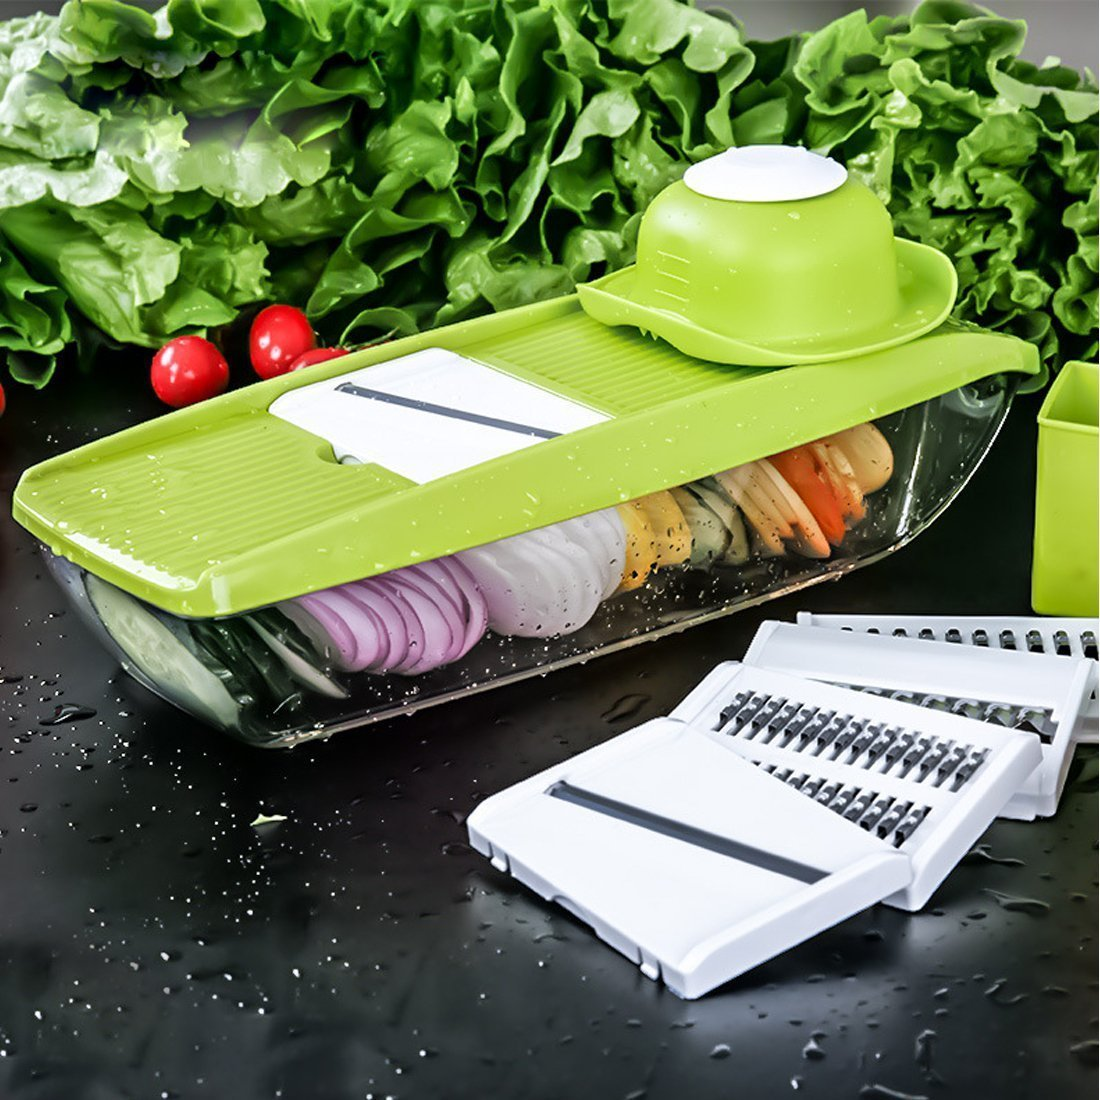 Mandoline Slicer Interchangeable(5-in-1) Adjustable Stainless Steel Blades -Vegetable Peeler Slicer, Food Container